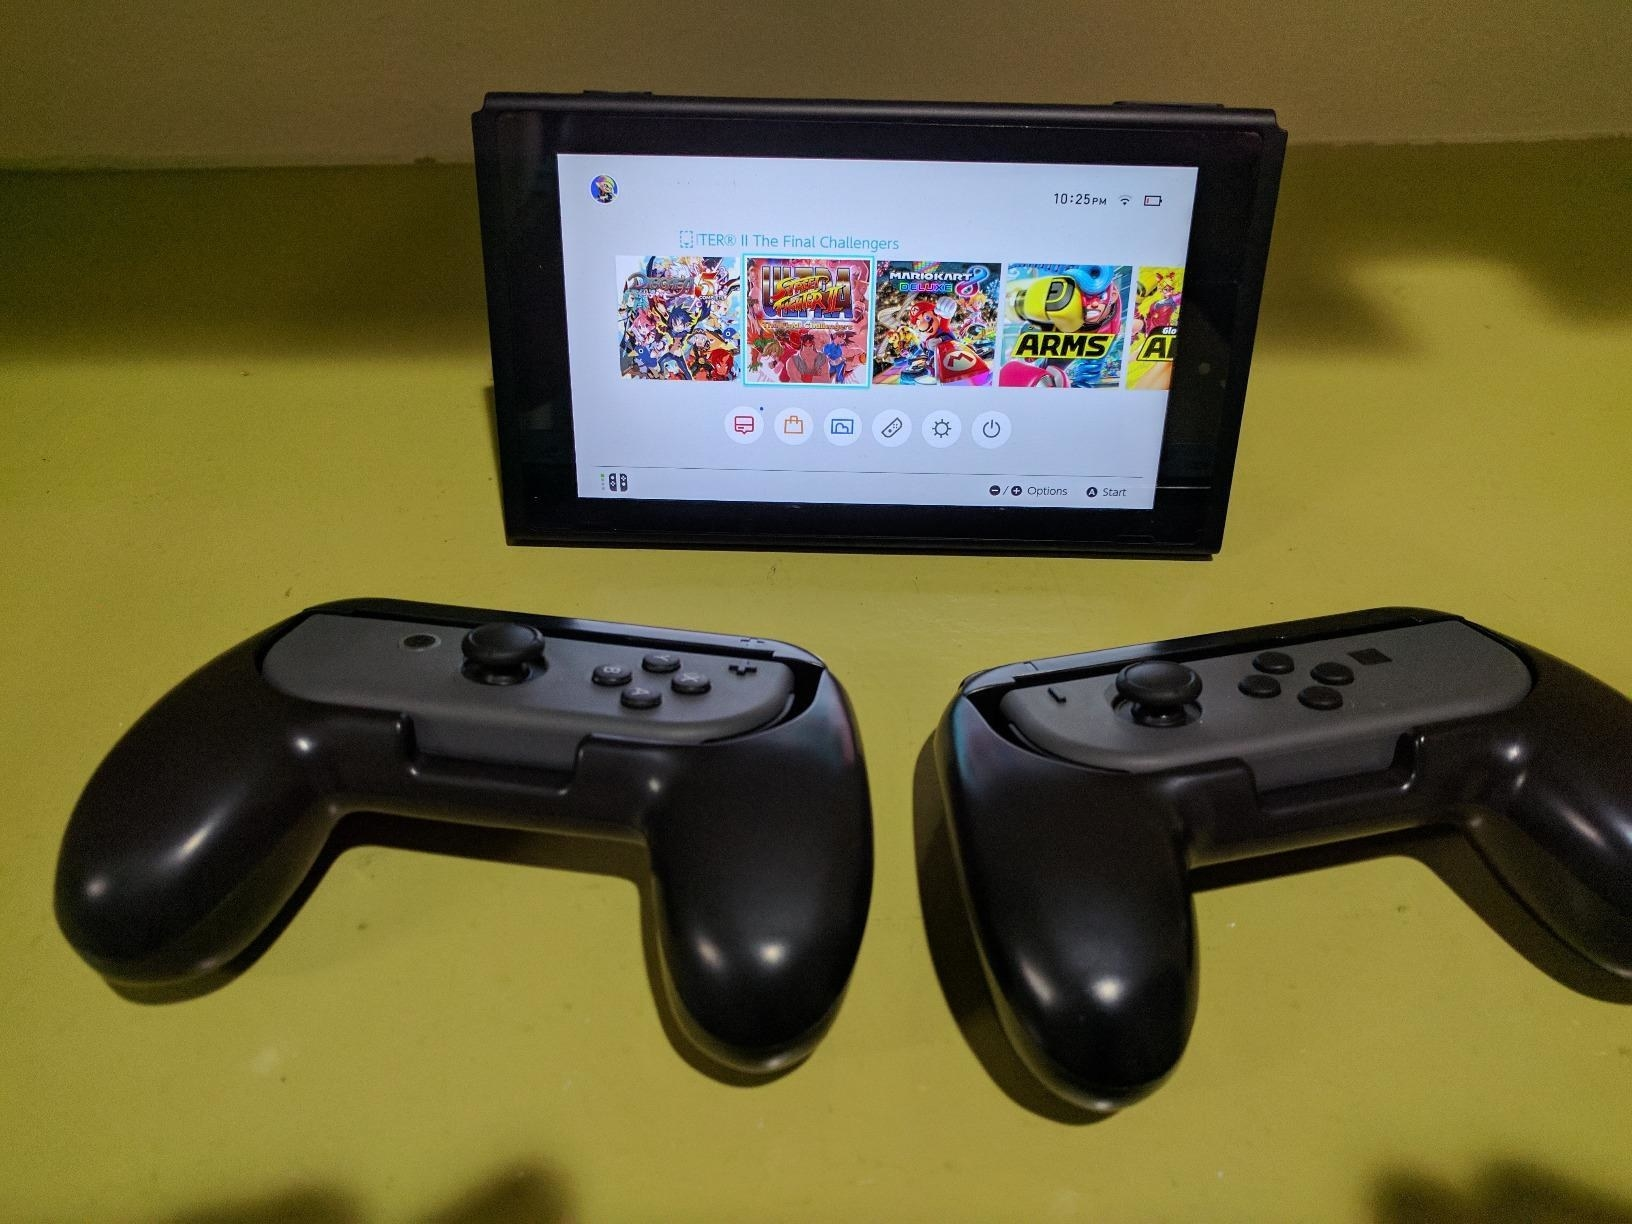 Two joy-cons controllers inserted into black joy-con grips